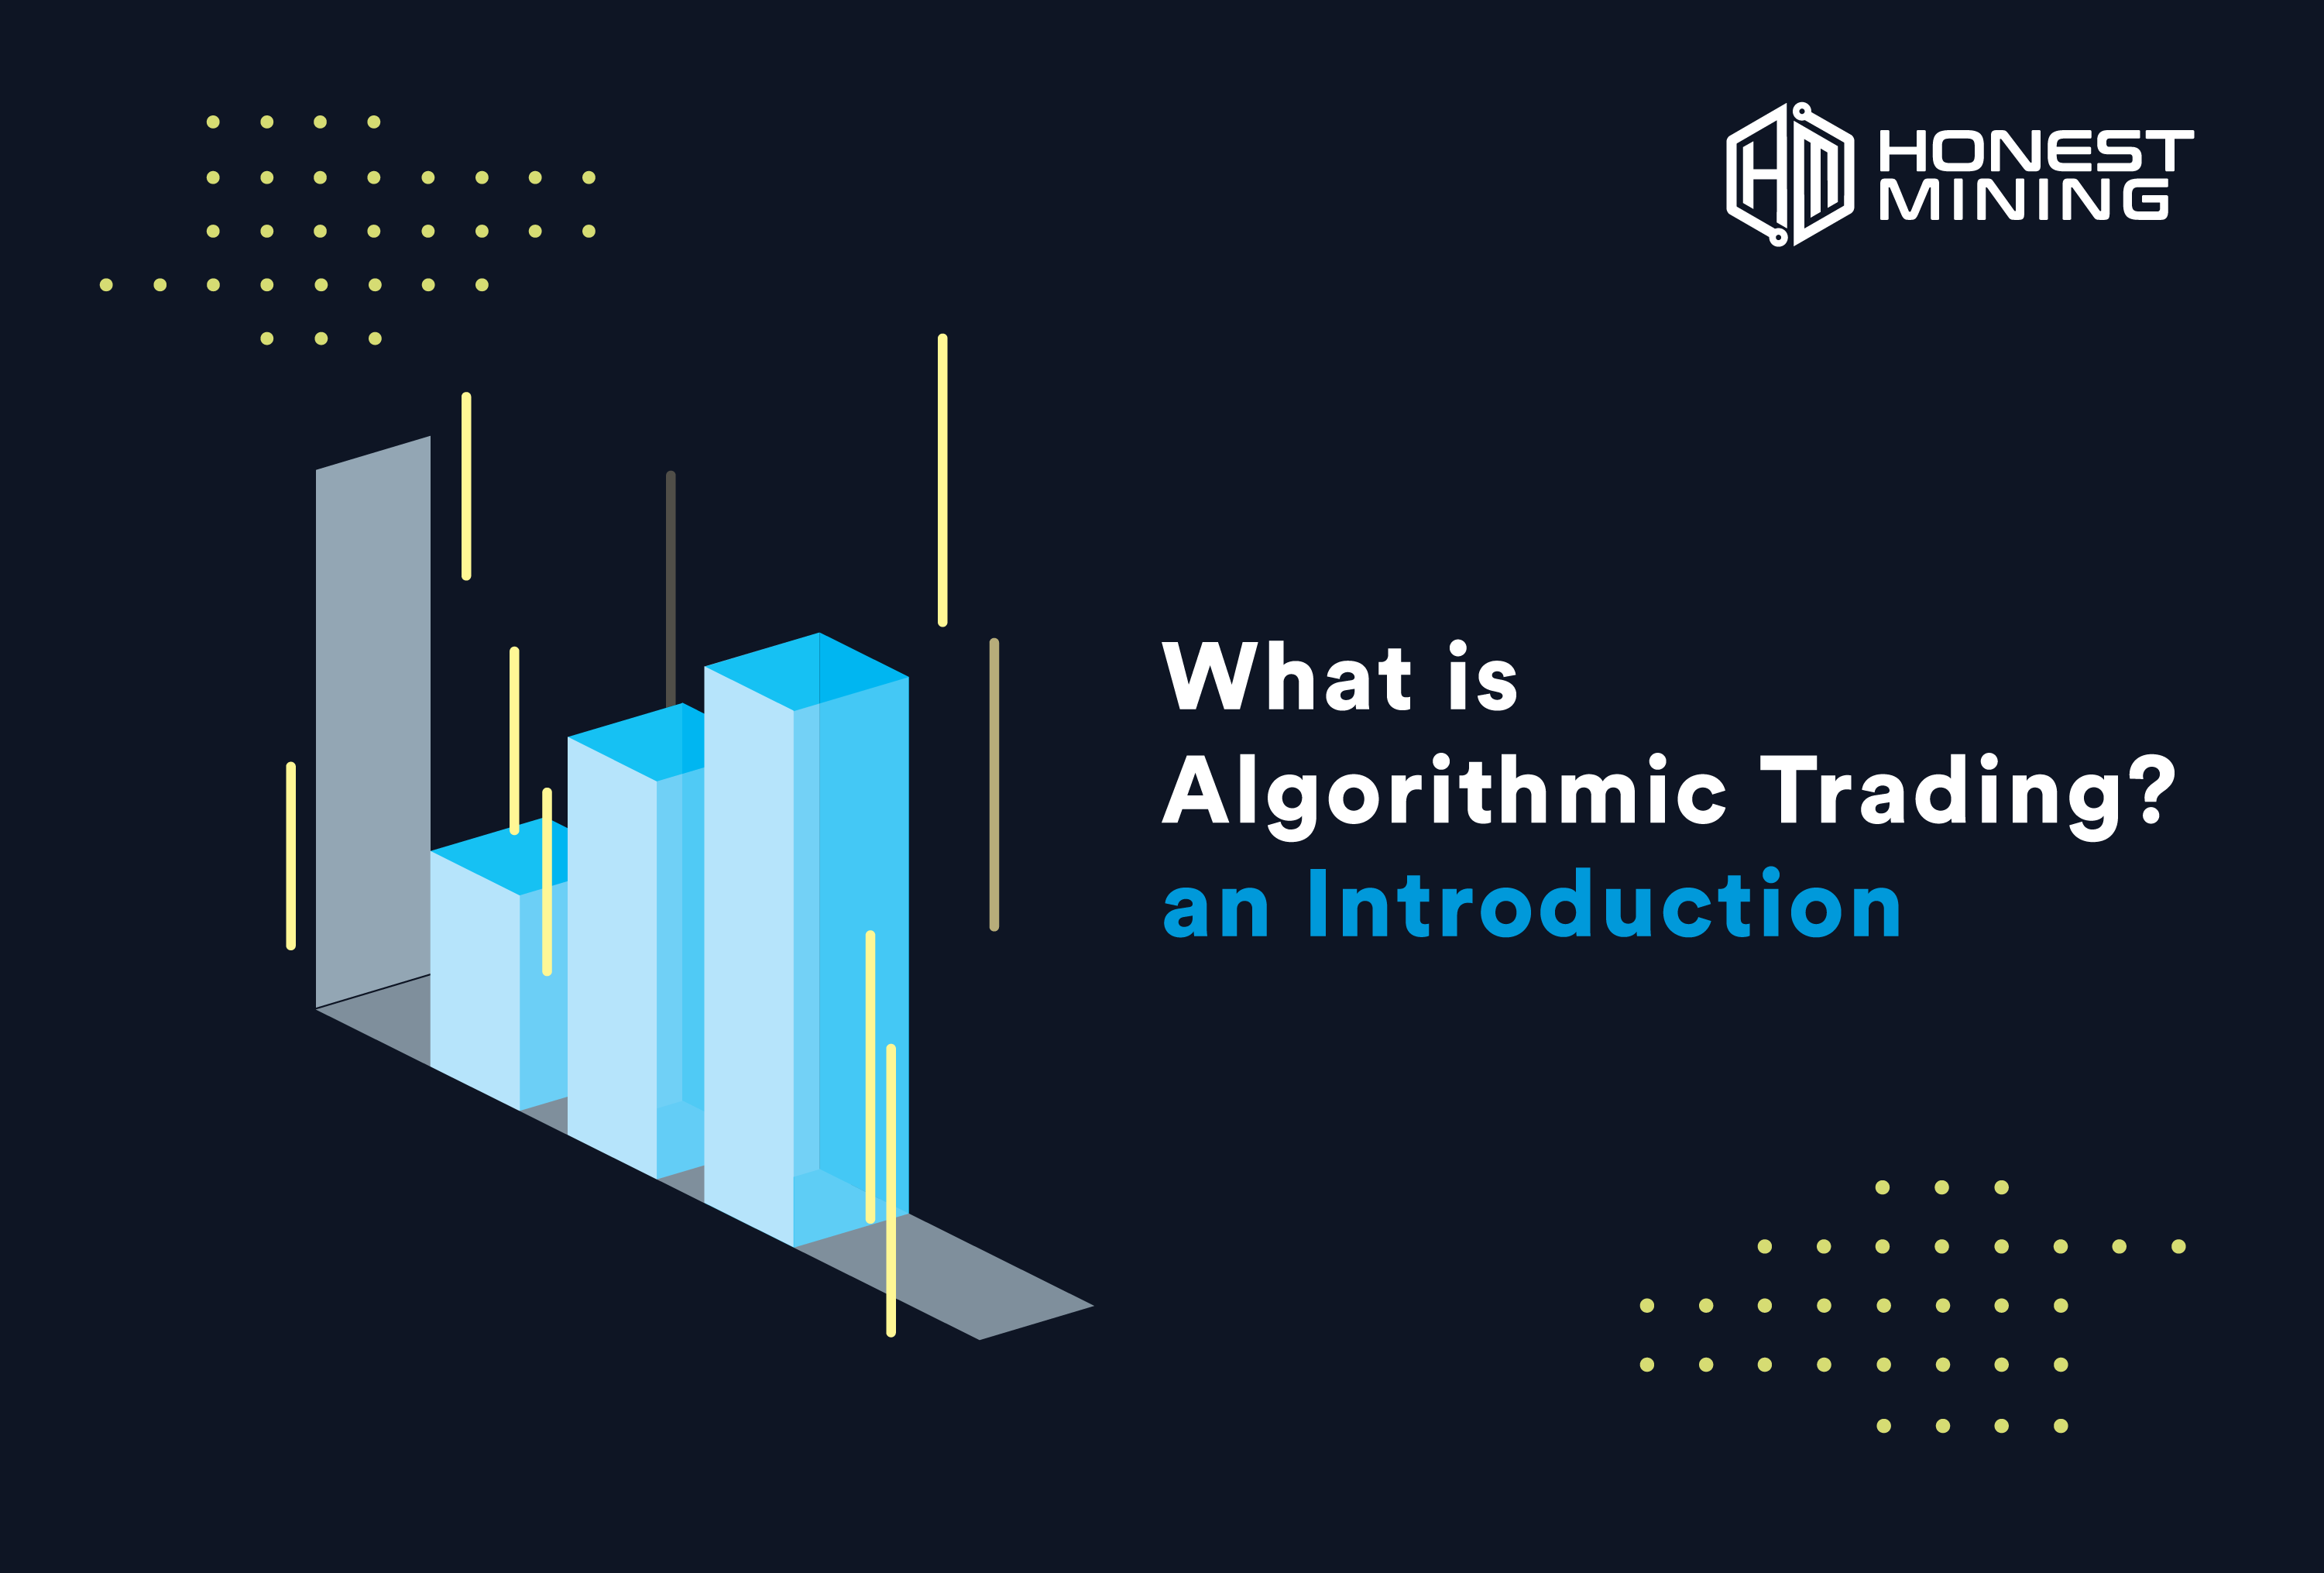 Intorduction to Algorithm Trading